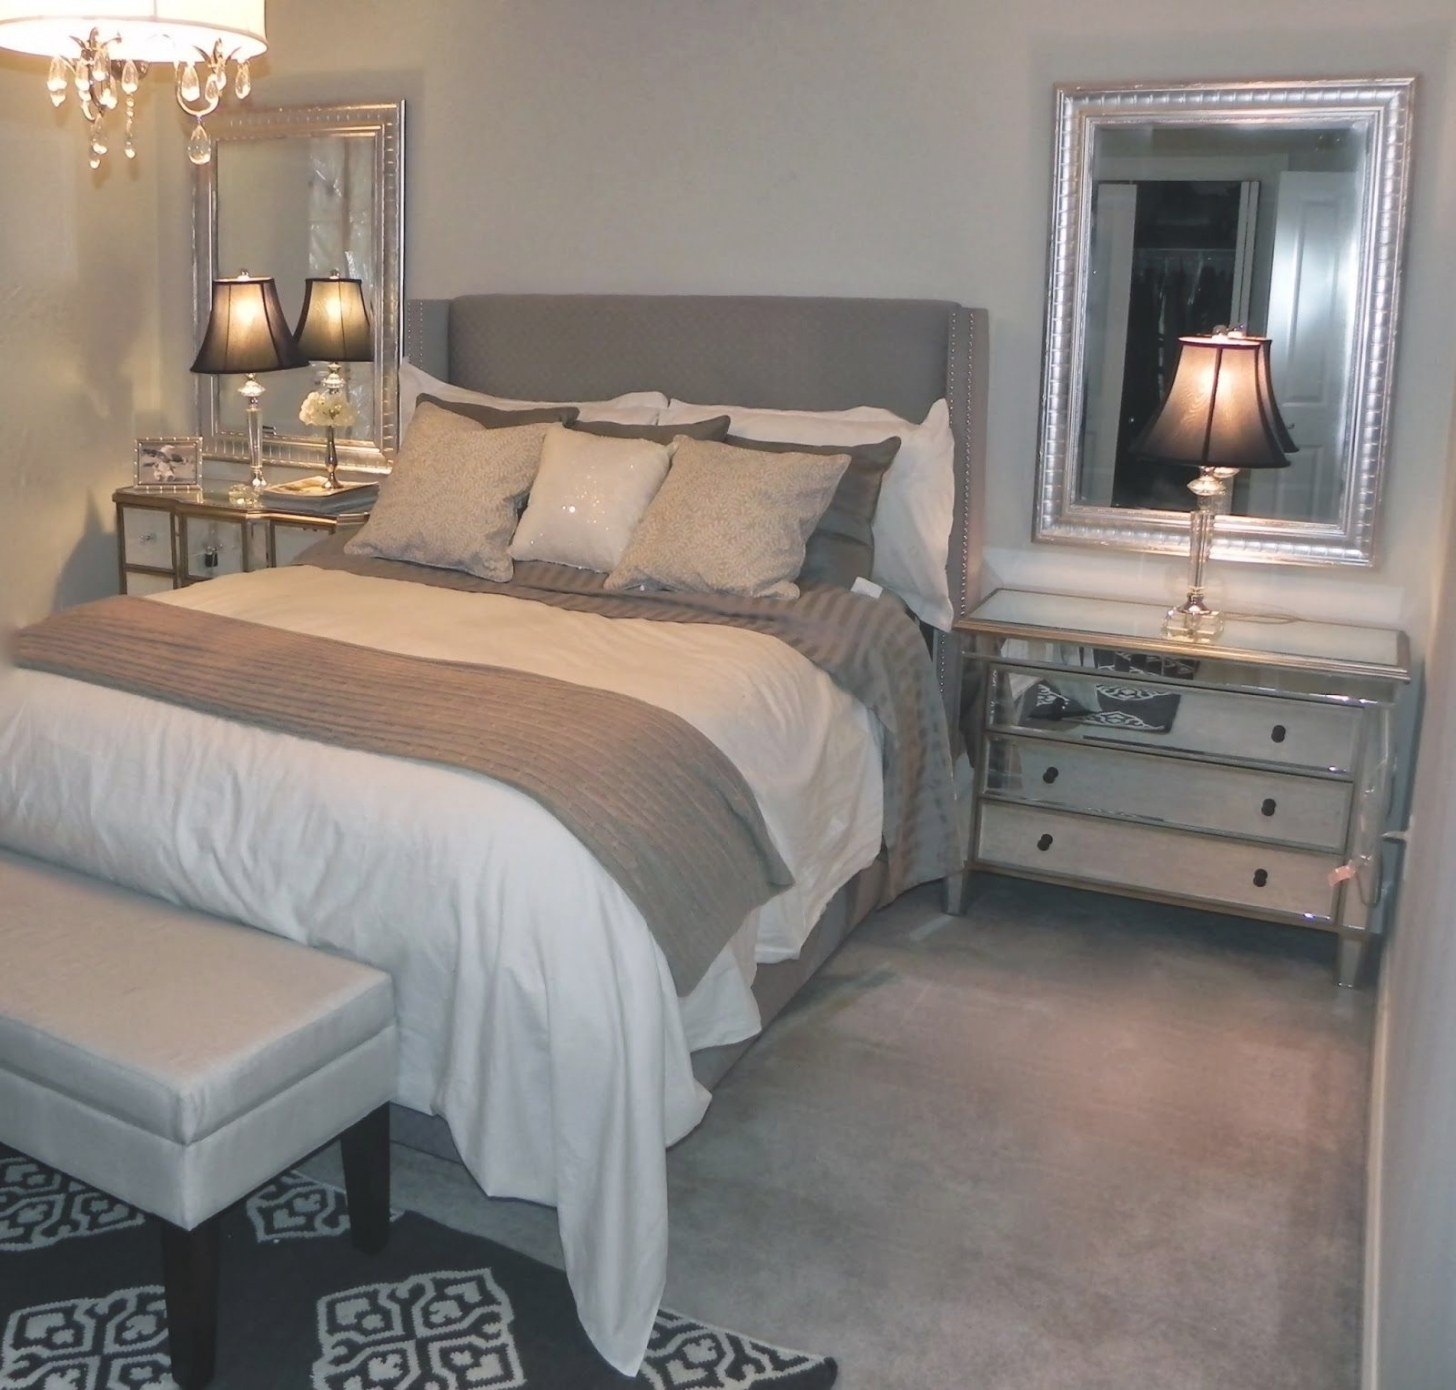 Dscn3171 1,600×1,528 Pixels | Beige Bedroom, Remodel inside Grey And Tan Bedroom